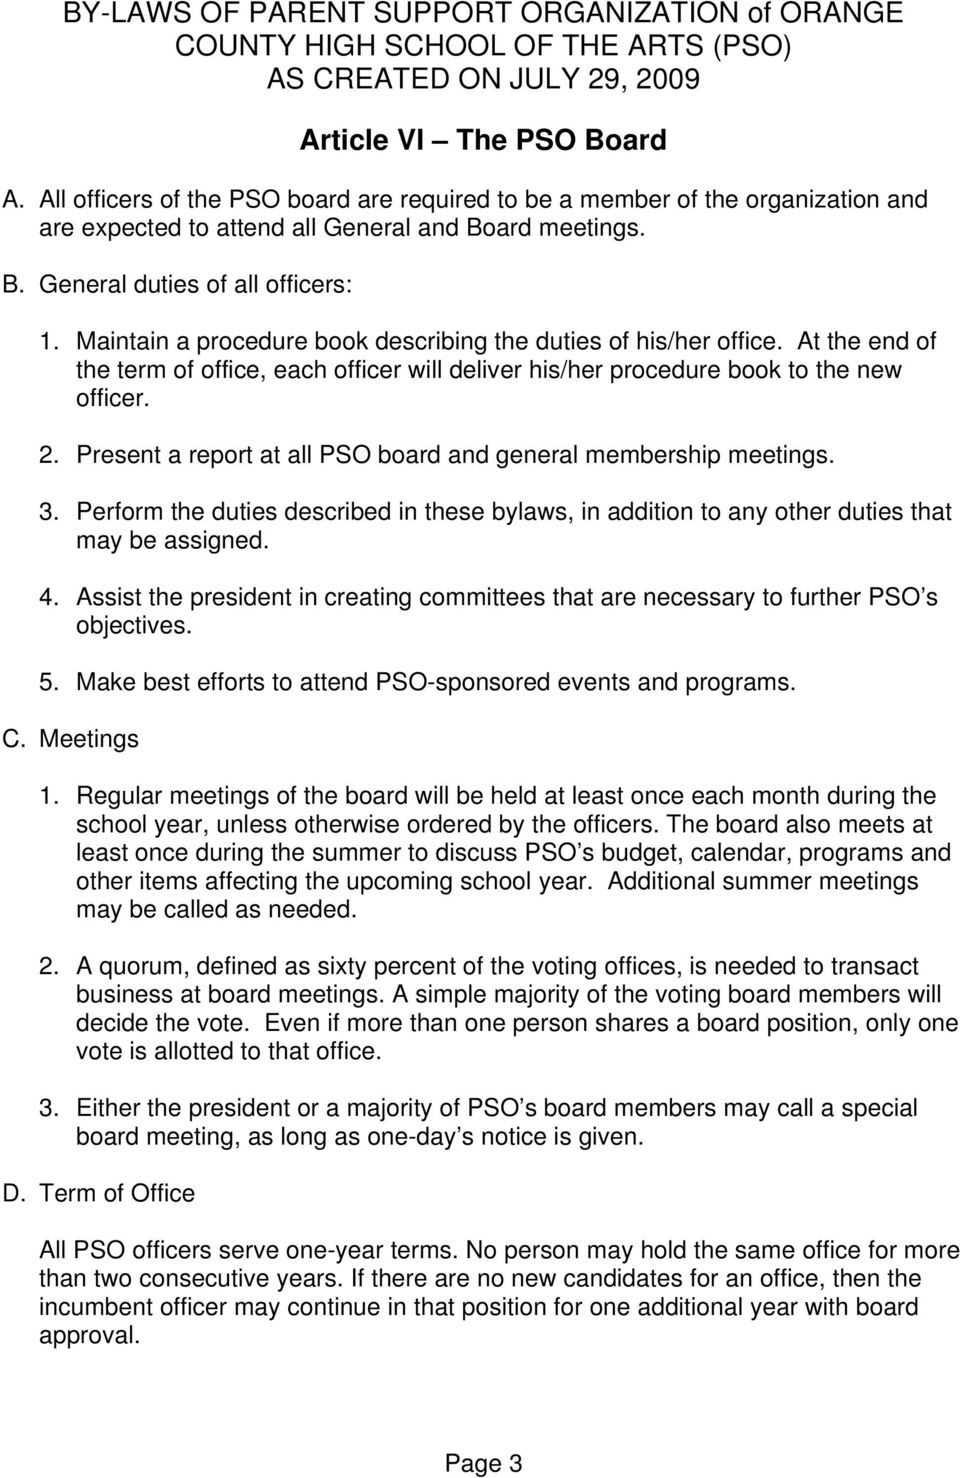 Present a report at all PSO board and general membership meetings. 3. Perform the duties described in these bylaws, in addition to any other duties that may be assigned. 4.